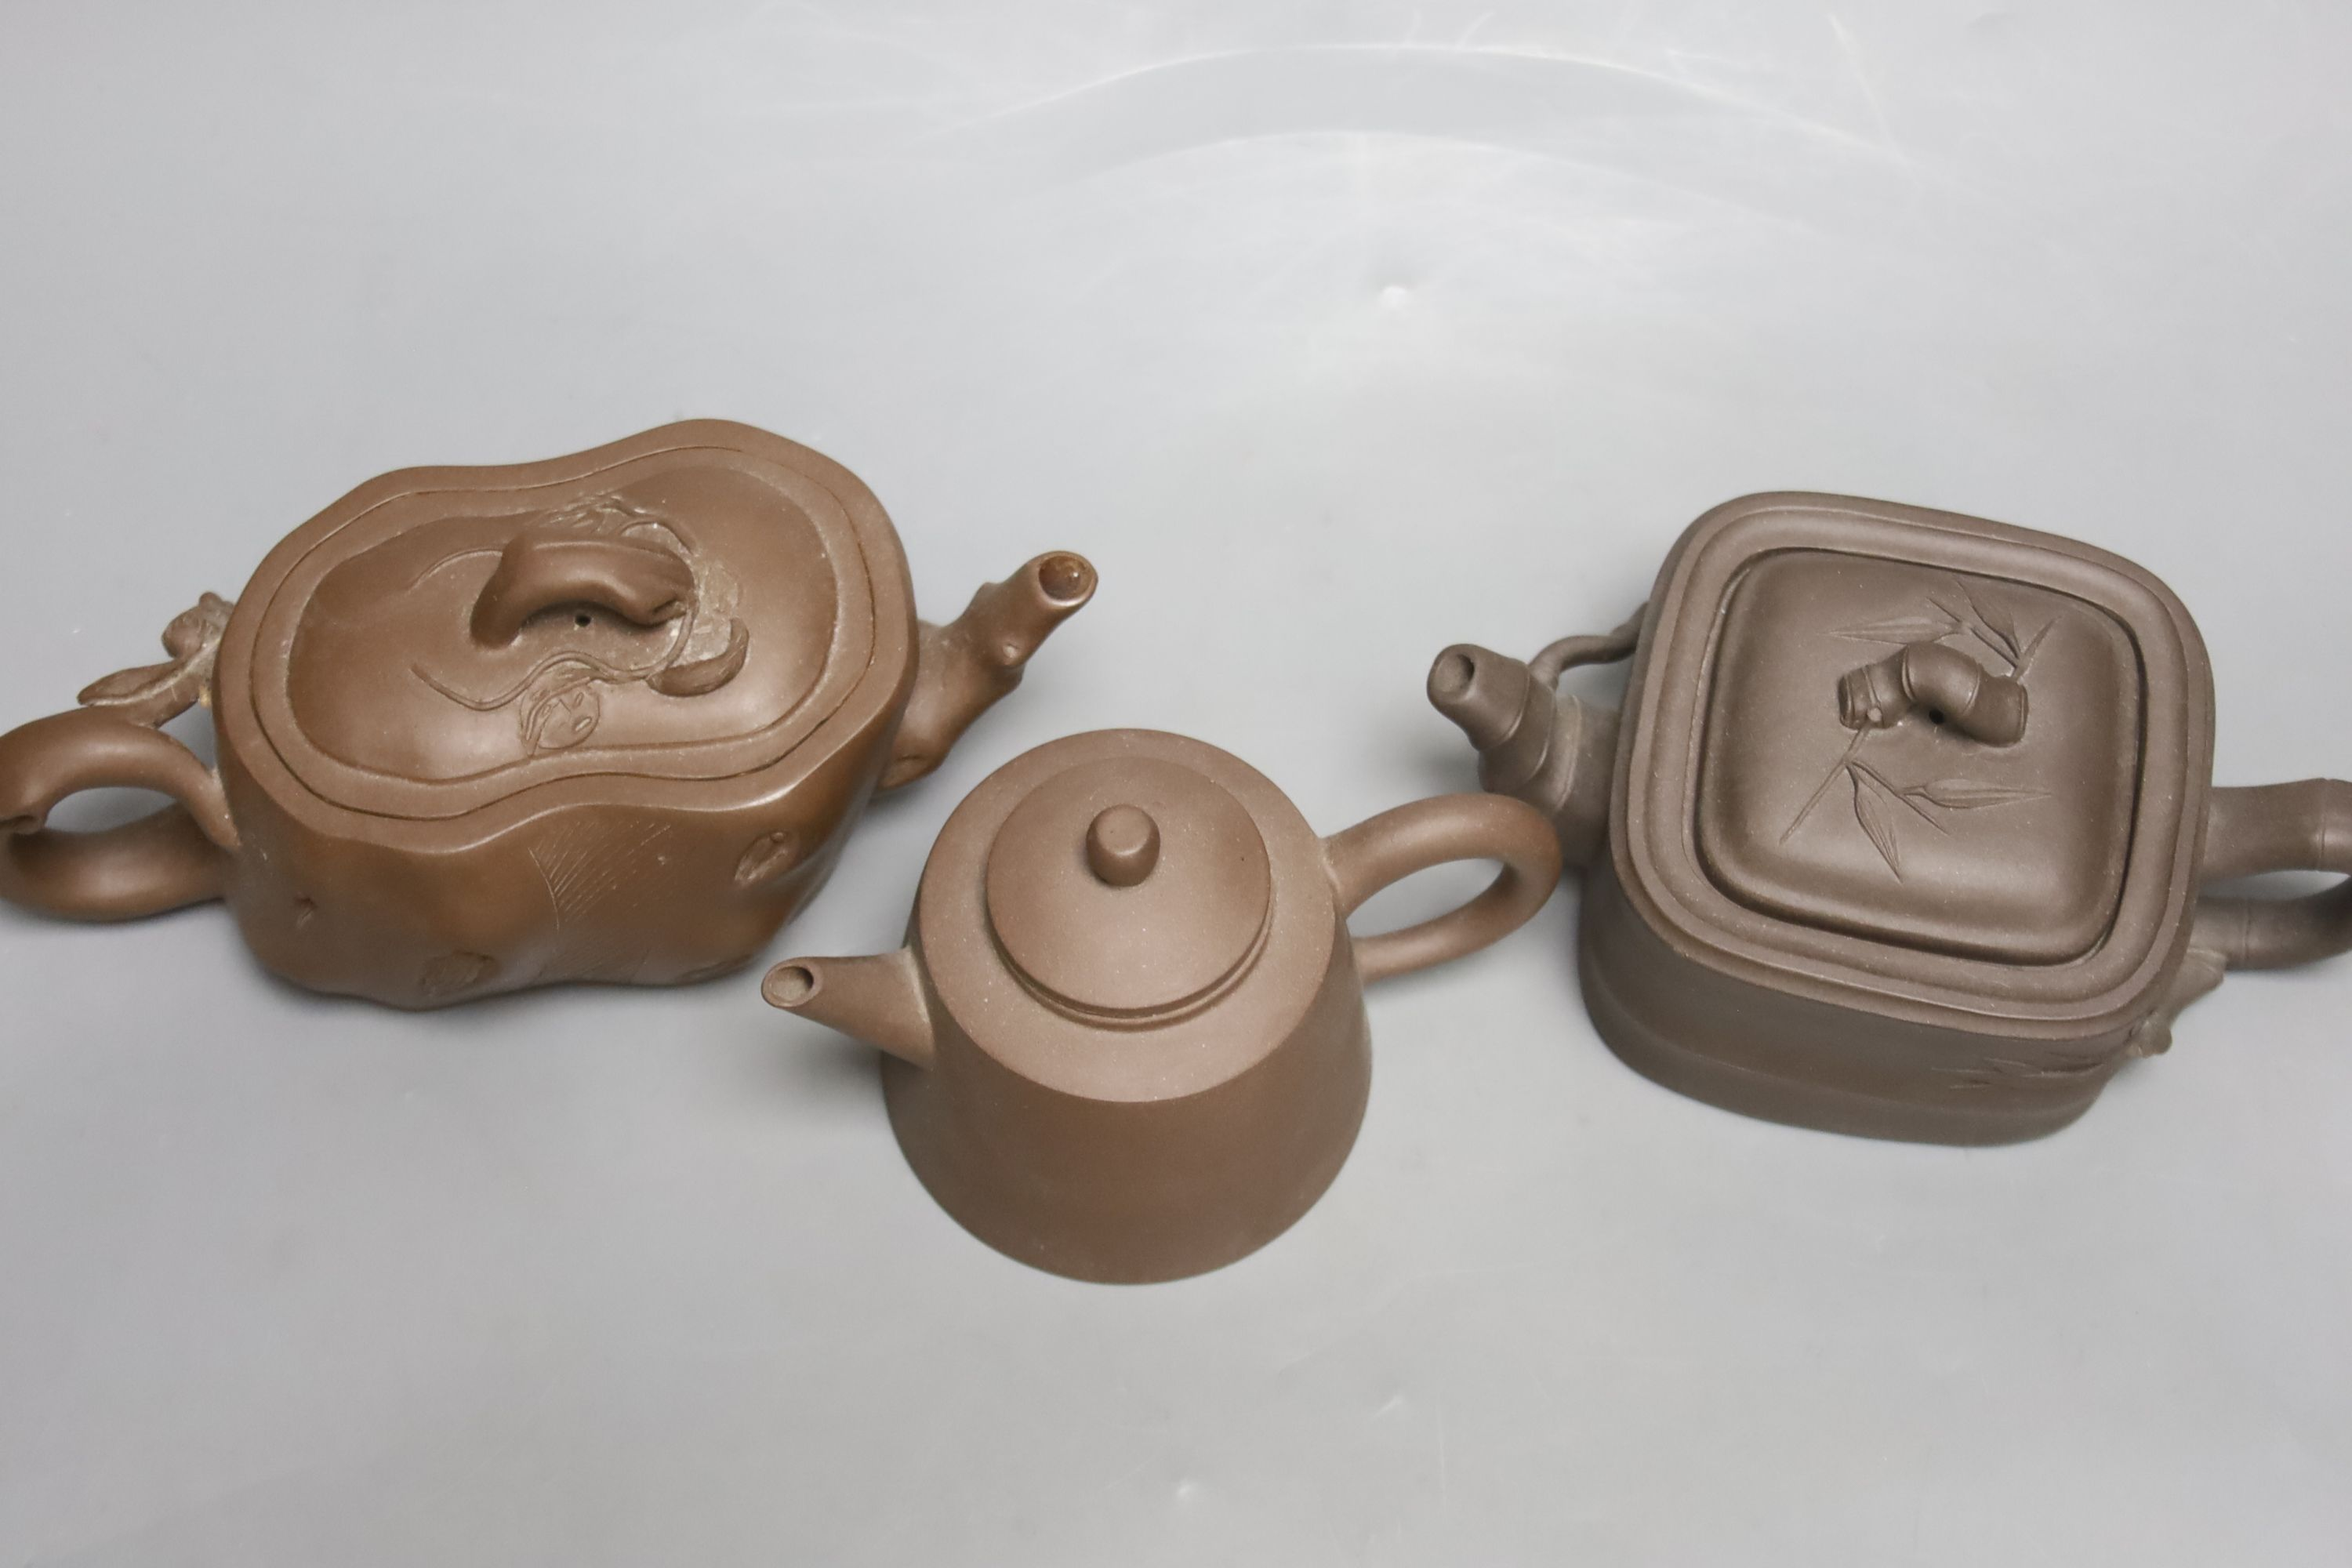 Three Chinese Yixing teapots - Image 3 of 4